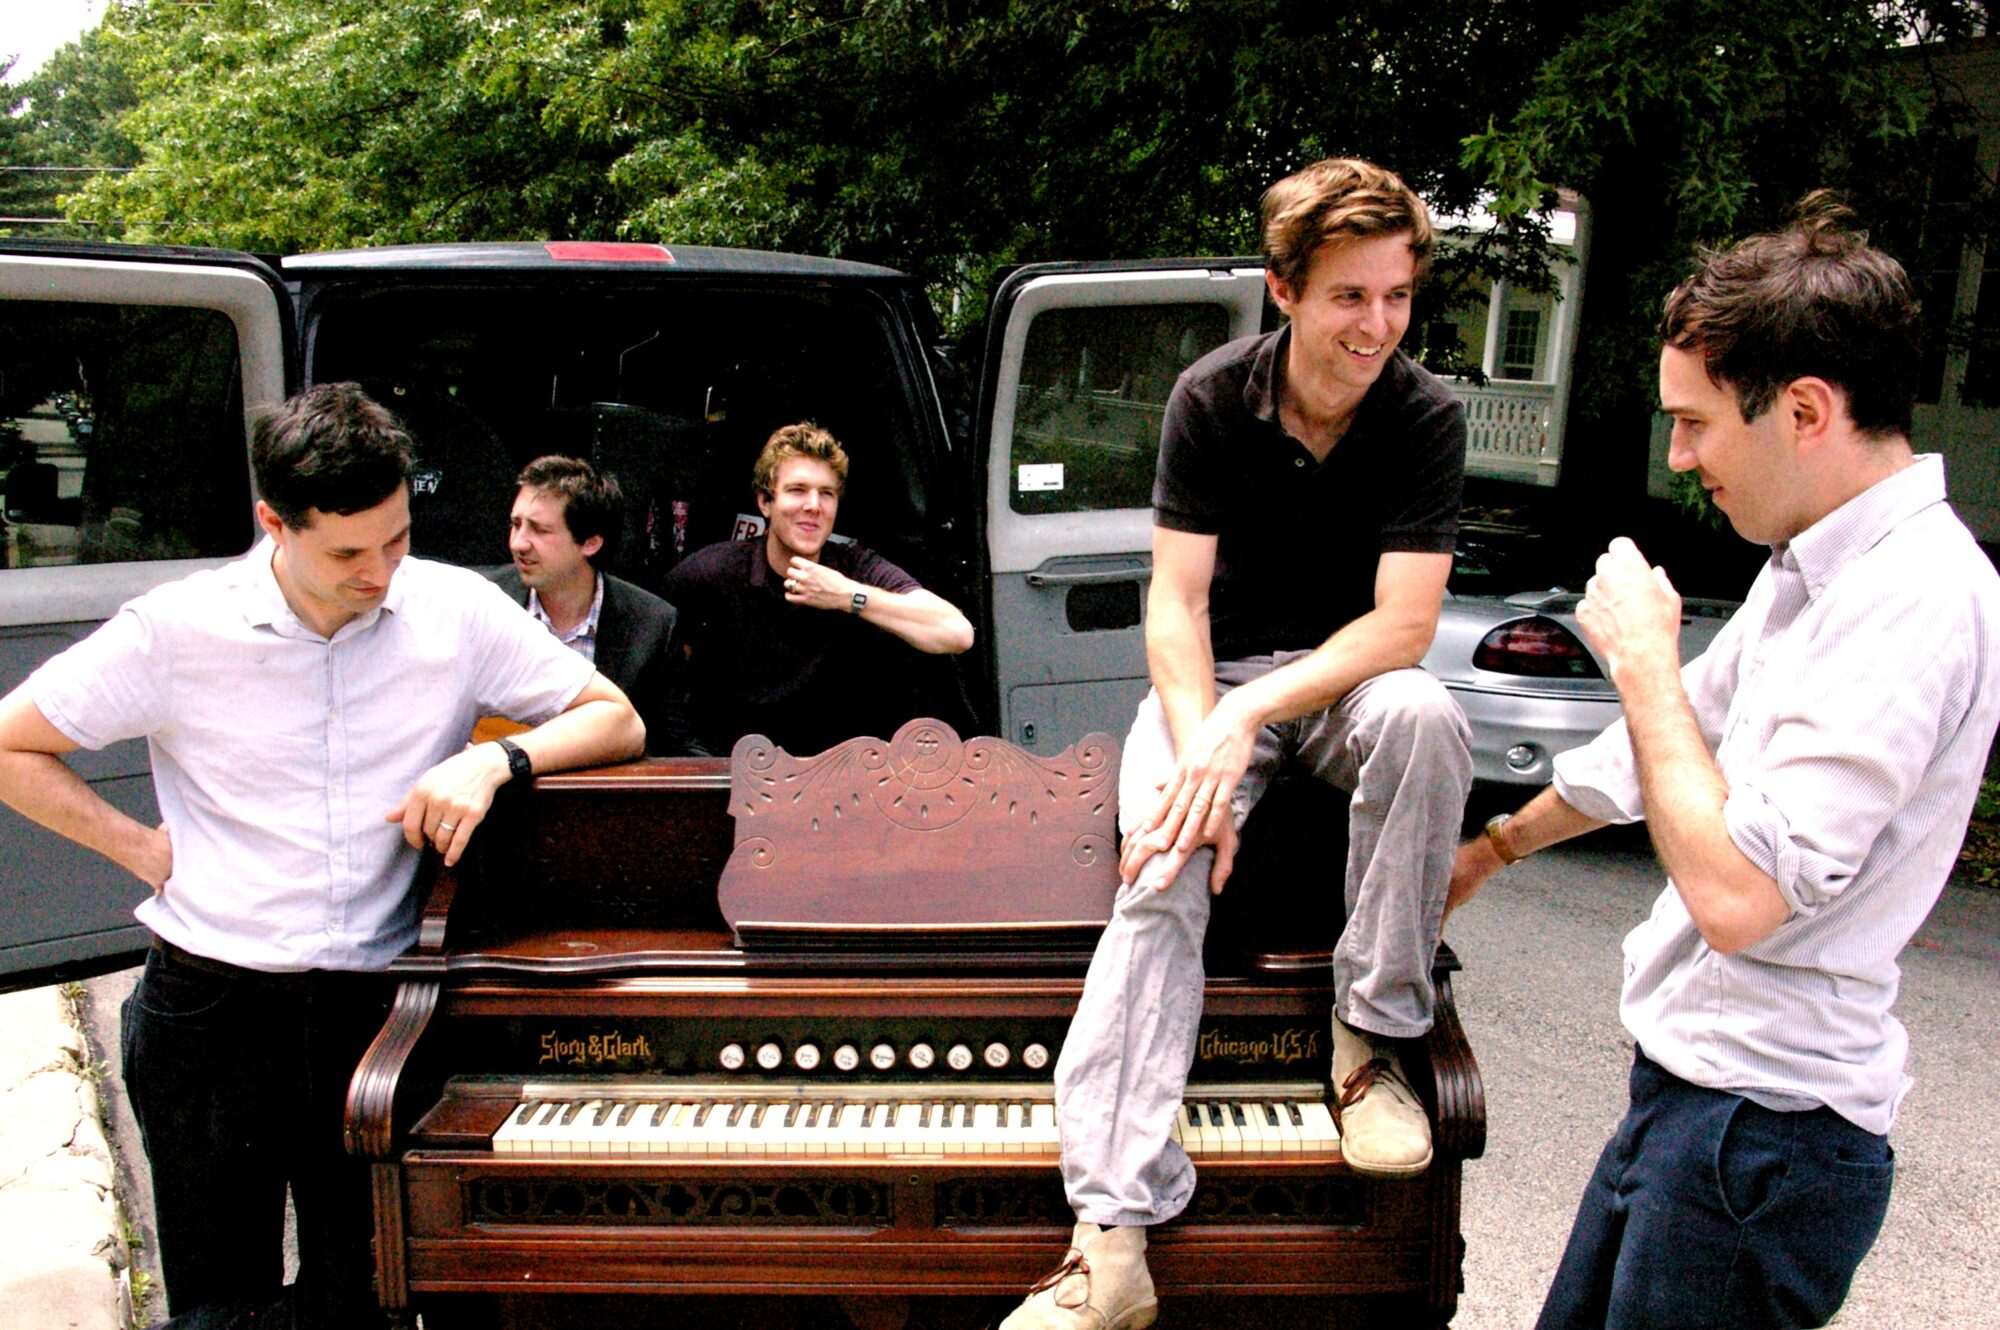 The Walkmen (Montreal, QC – June 28, 2006)